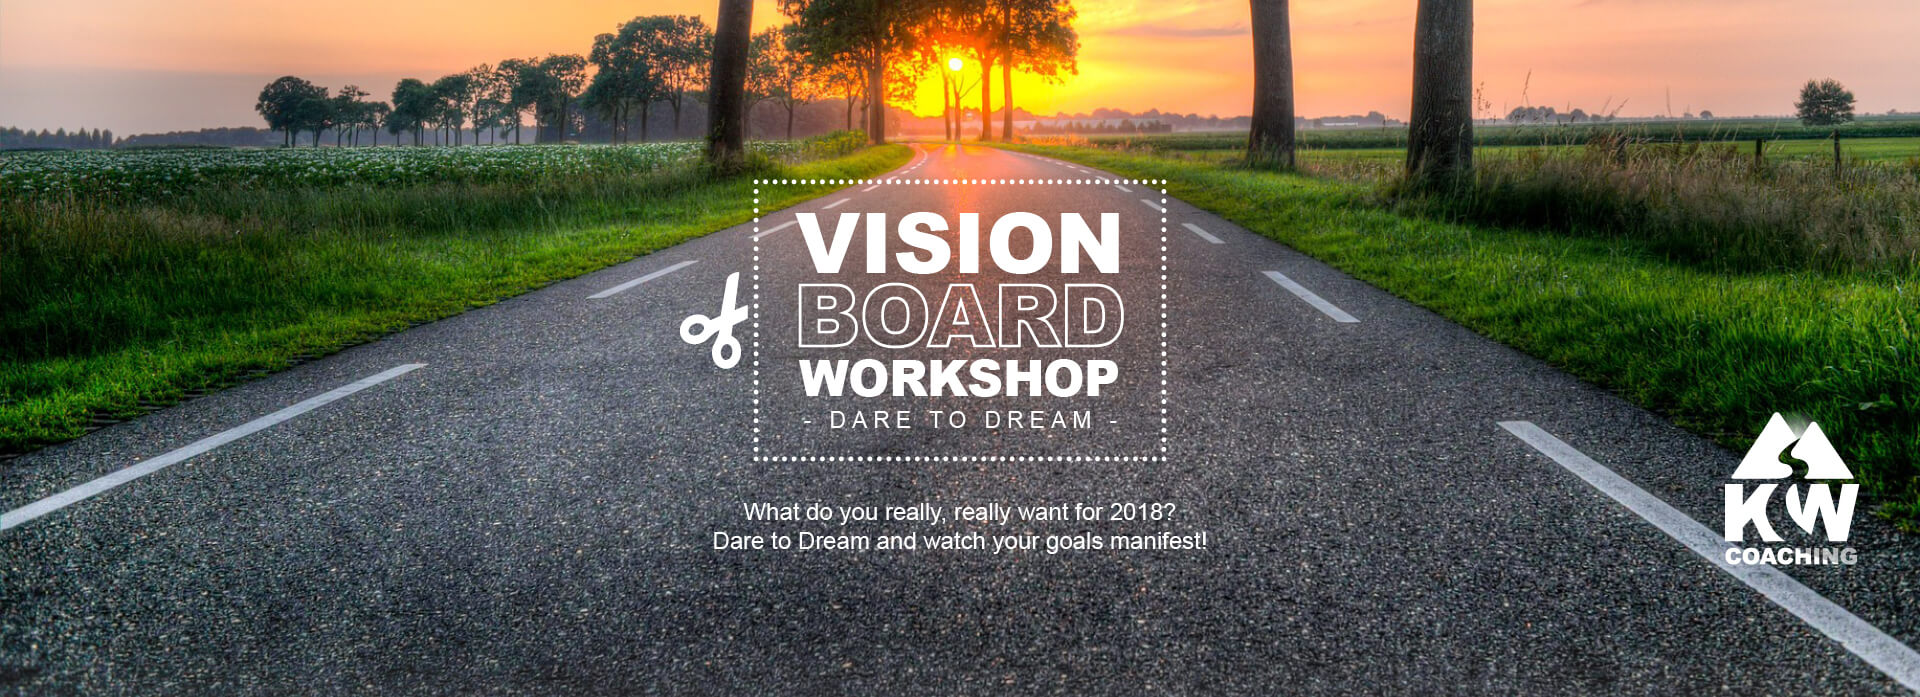 KW-coaching-slider-2-vision-board-workshop